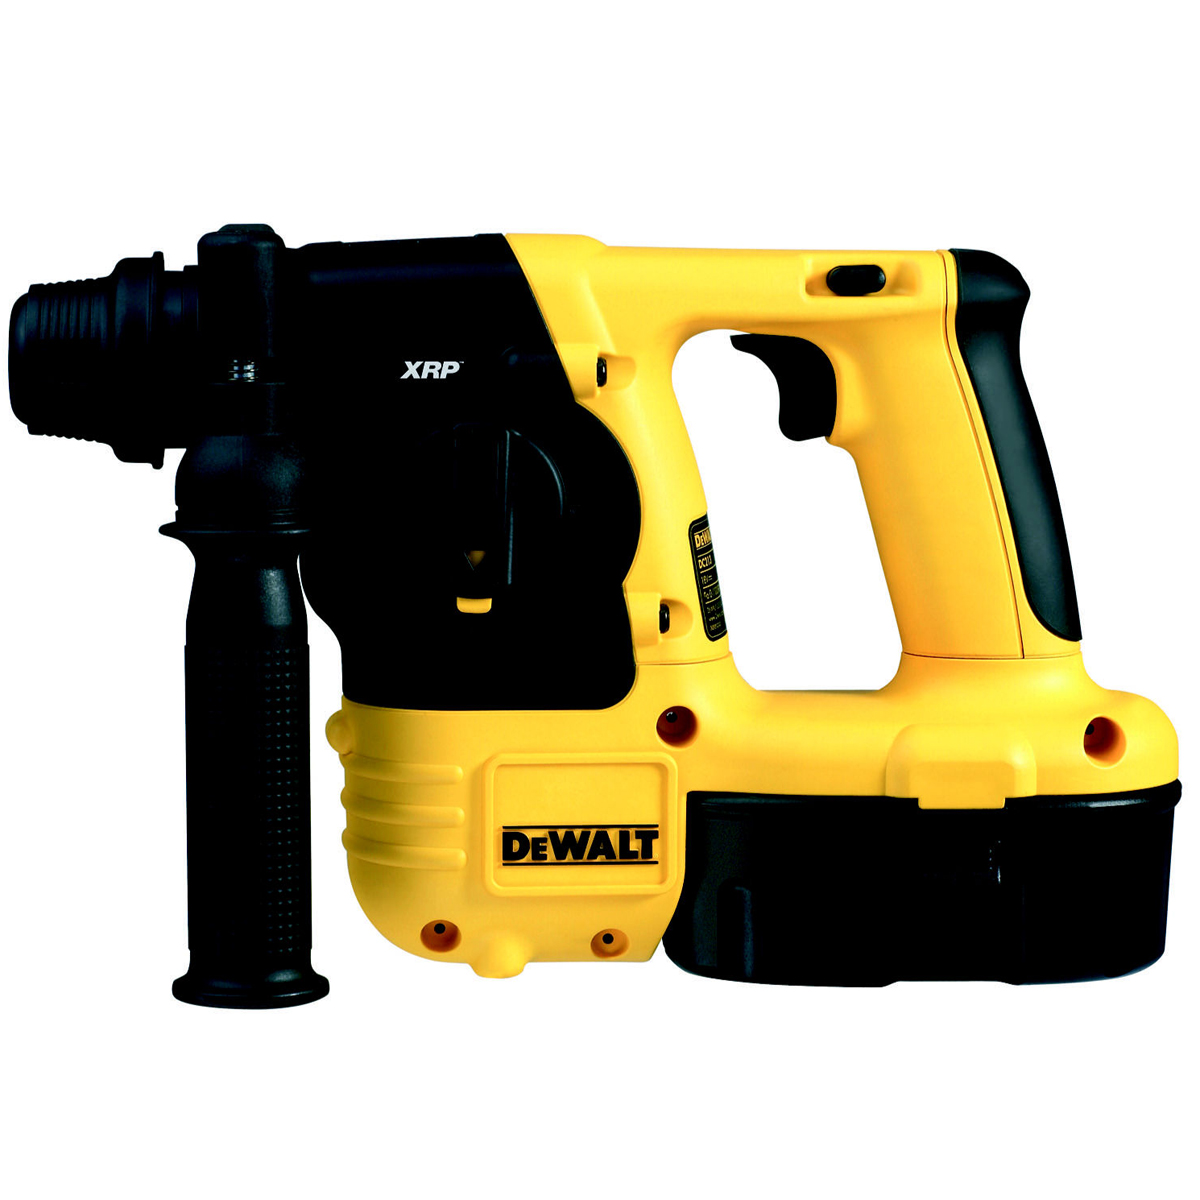 Sep 01, · Find DeWalt Smartphone Holder in the Device Accessories category at Tractor Supply hocalinkz1.ga protect your smartphone with the DeWalt Smartphone Hol2/5(1).